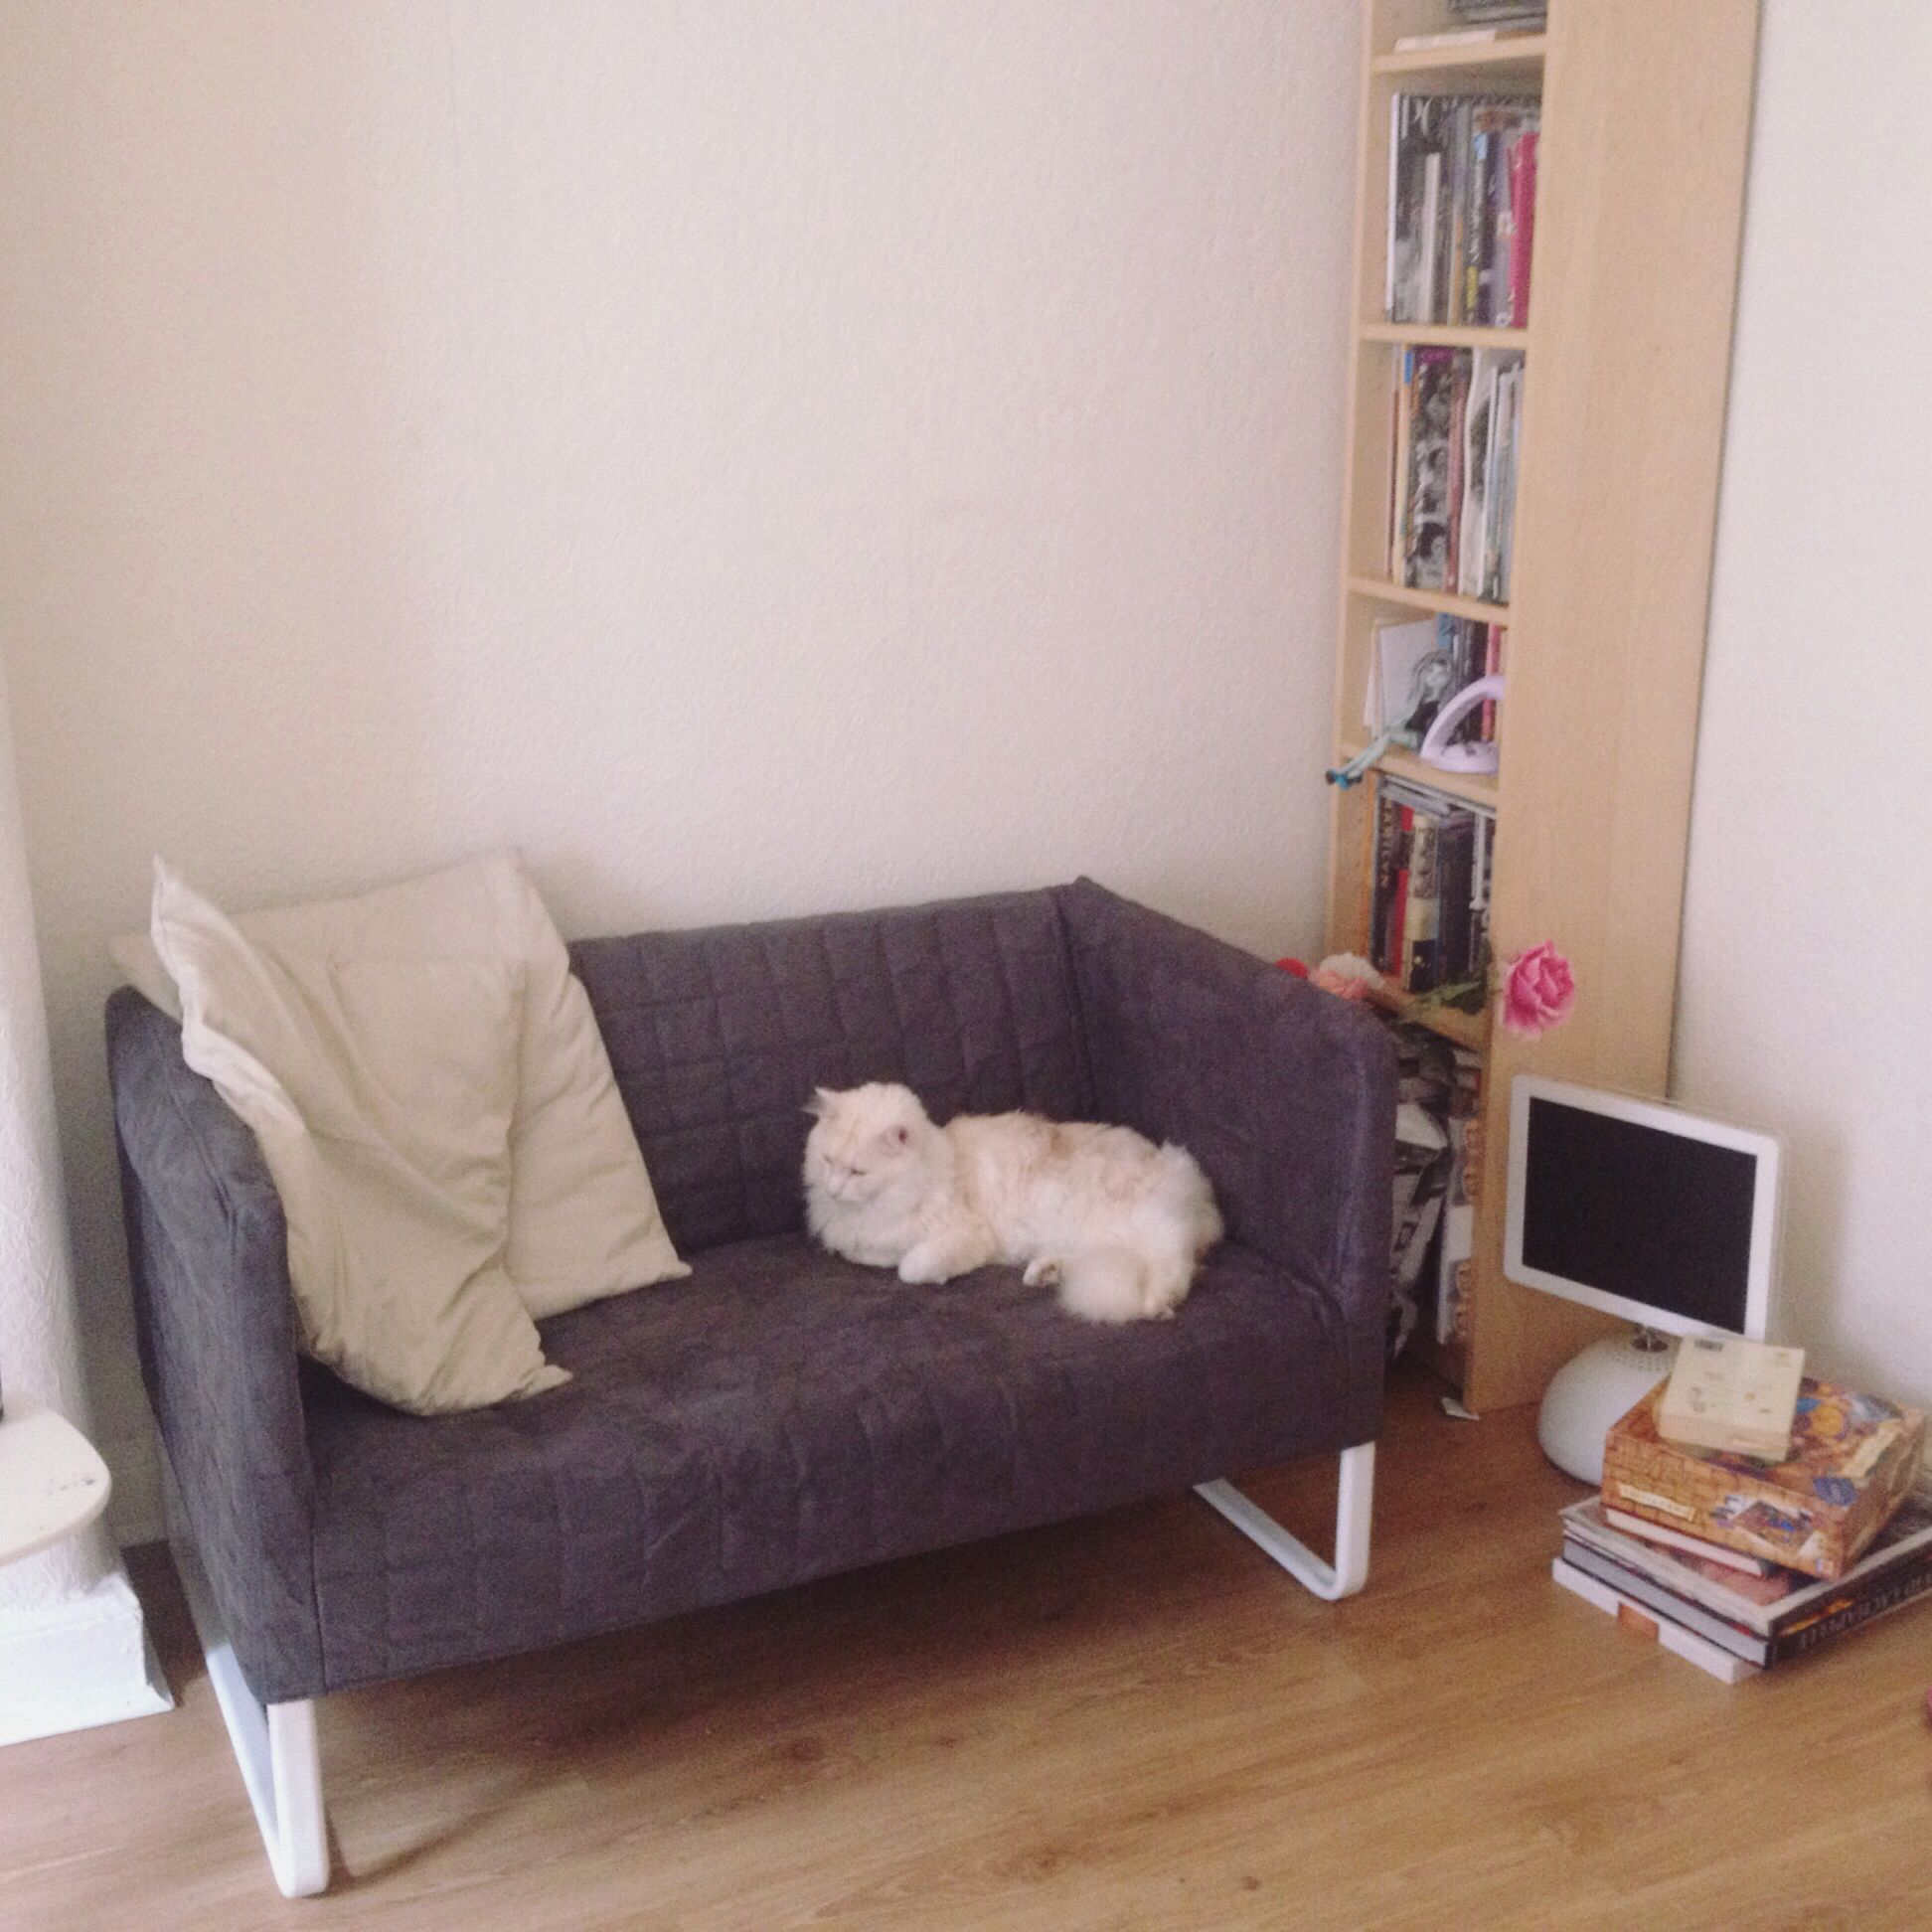 Ikea Knopparp Two Seater Couch Love Seat I Built This Last Night For My New Flat And It S A Perfect Example Lounge Room Design Guest Room Office Diy Sofa